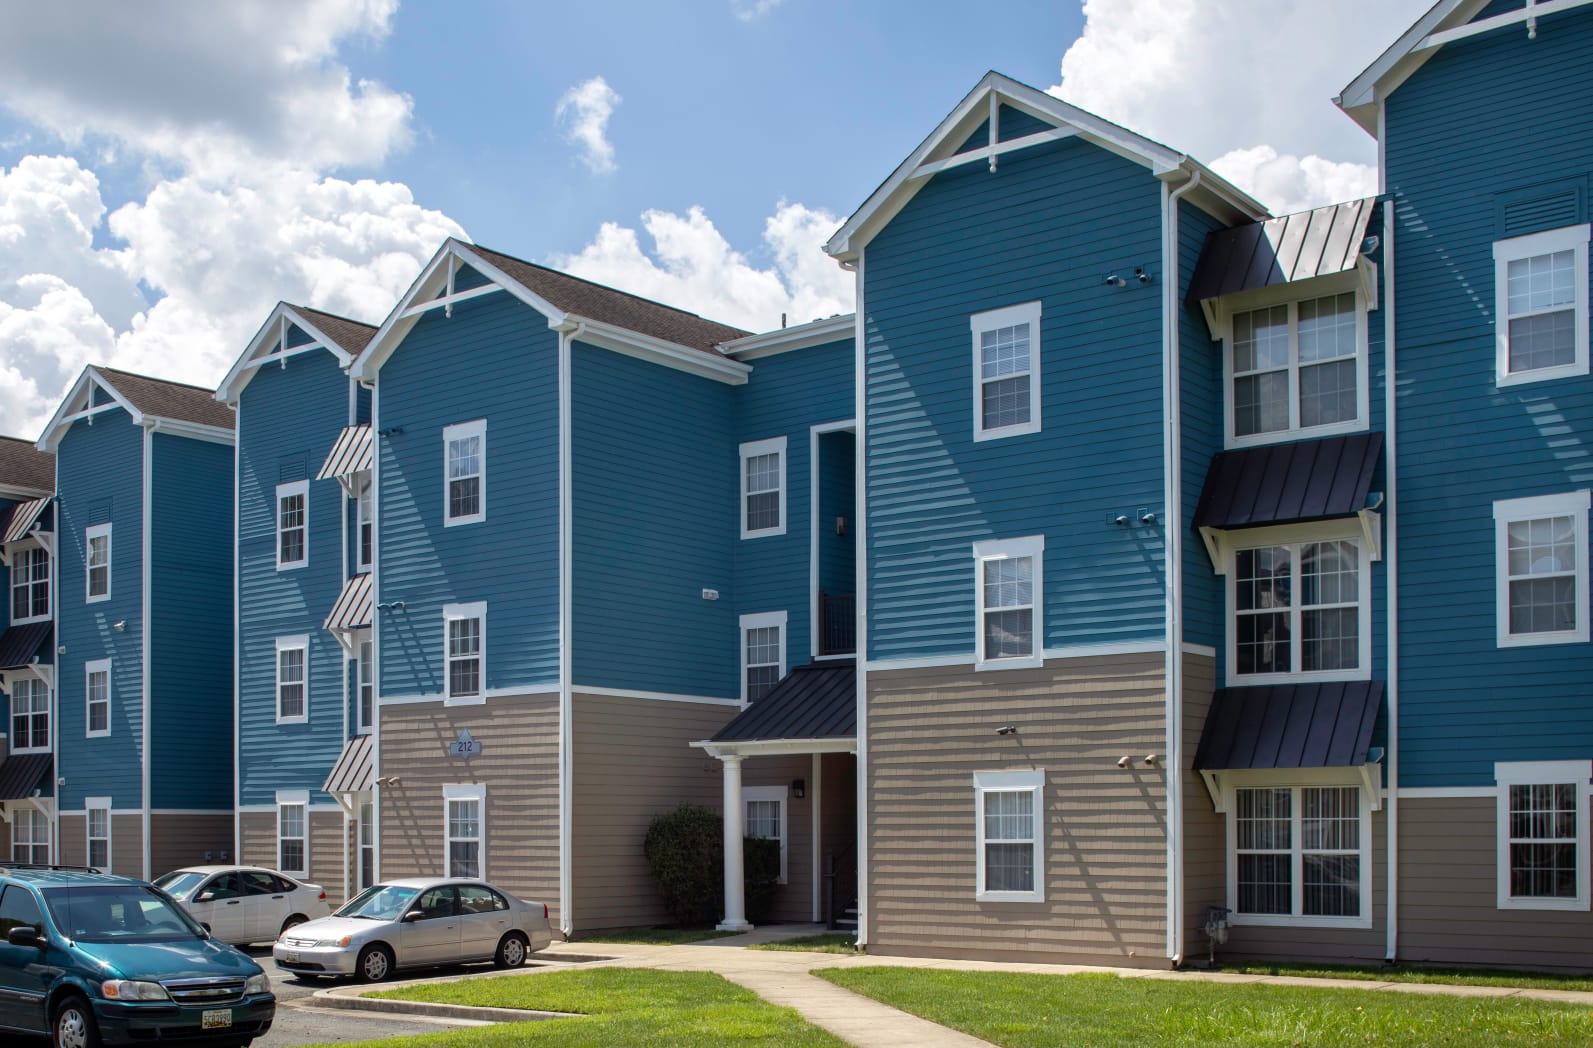 The Flatts Salisbury - off campus student housing in Salisbury, Maryland